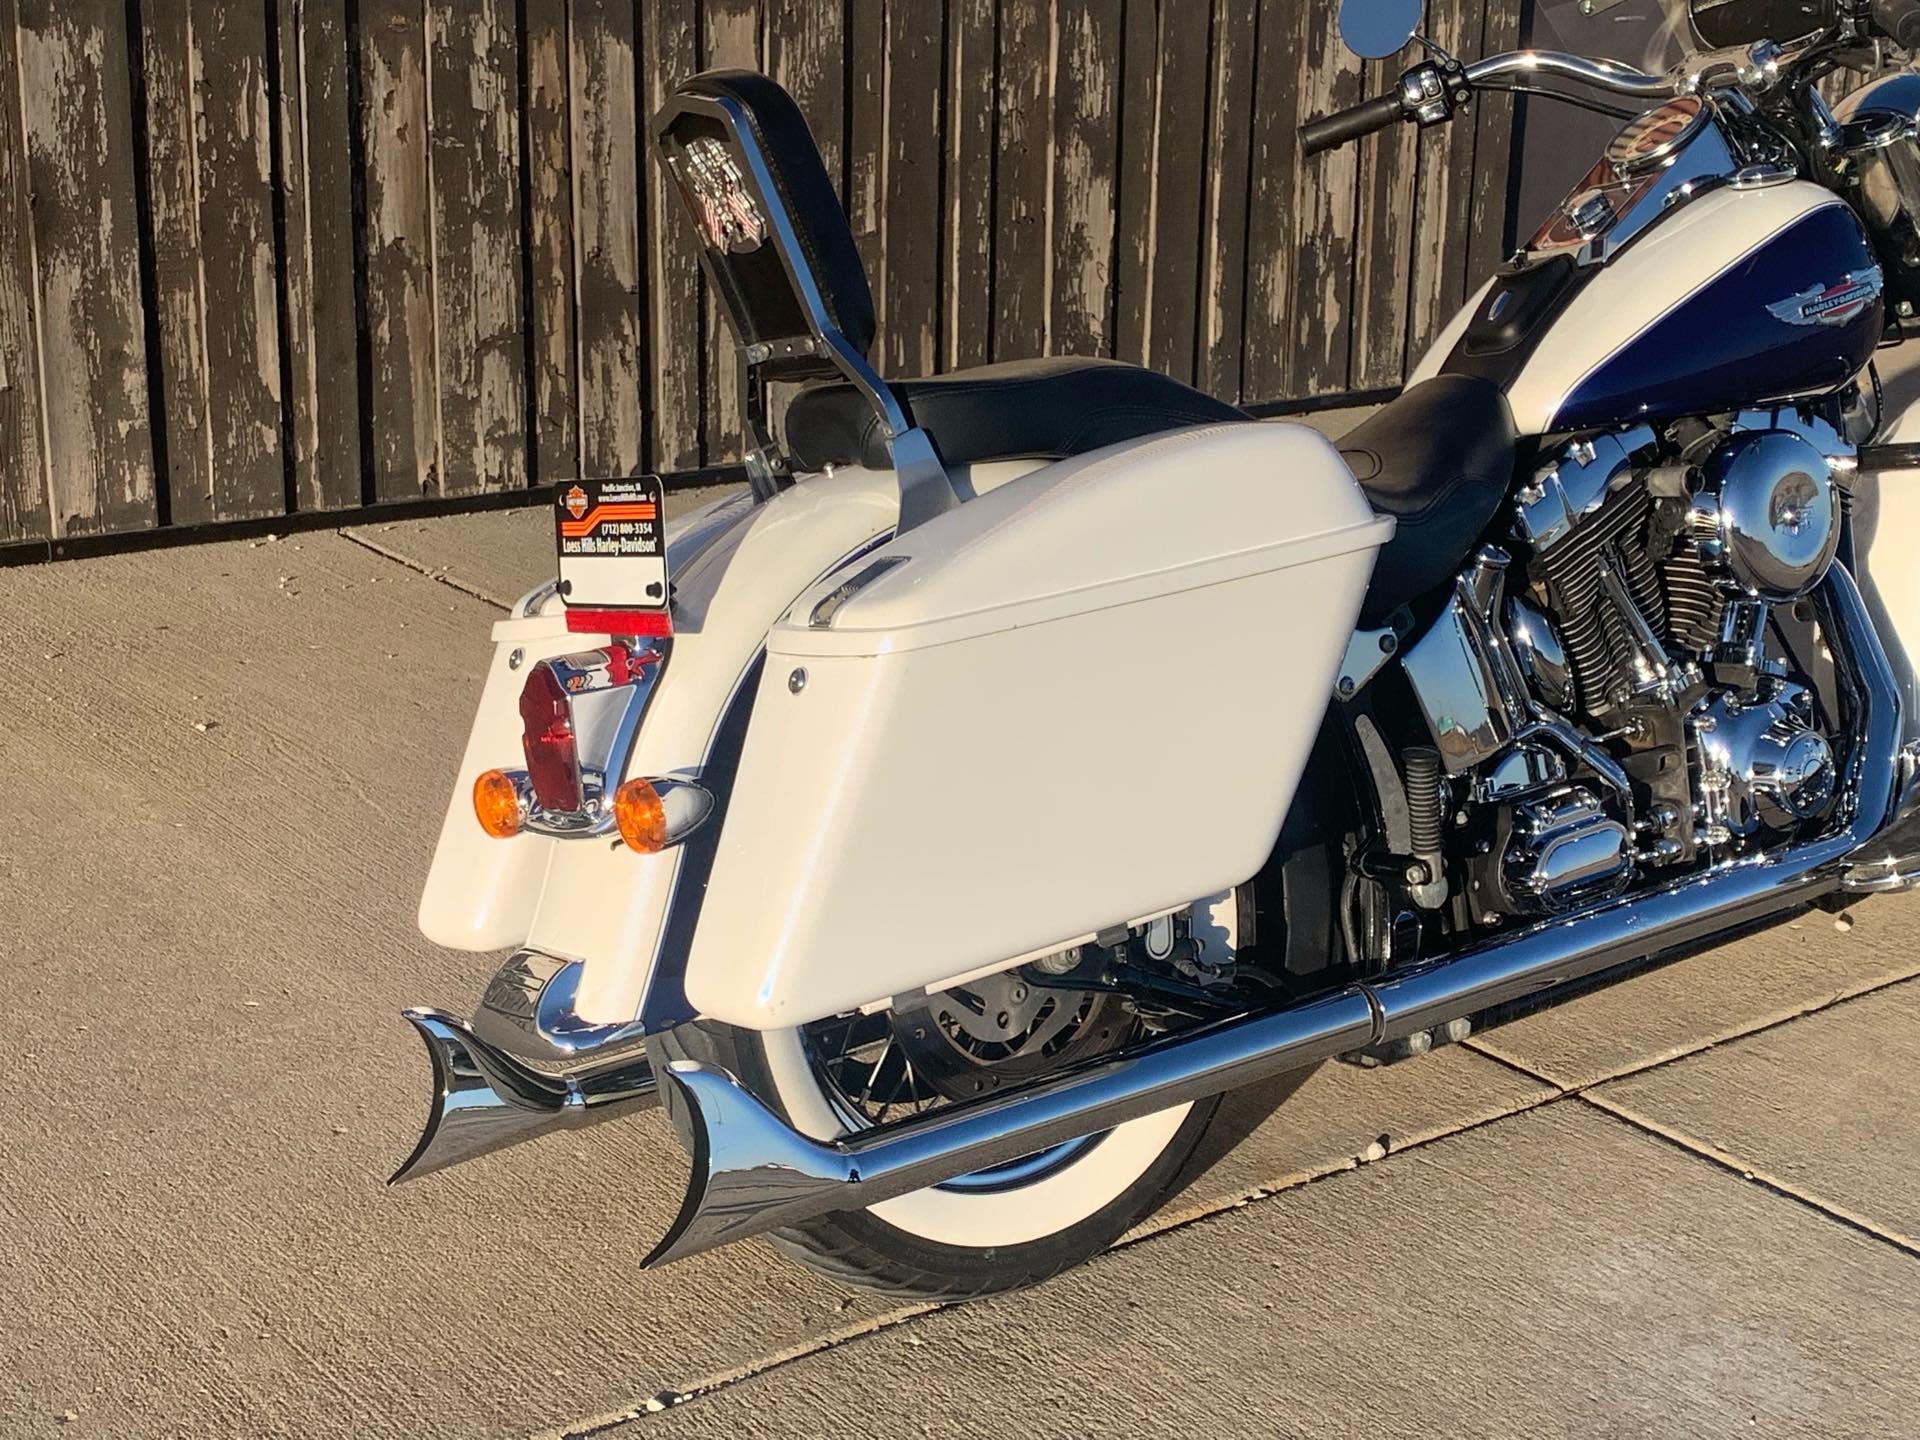 2006 Harley-Davidson Softail Deluxe at Loess Hills Harley-Davidson